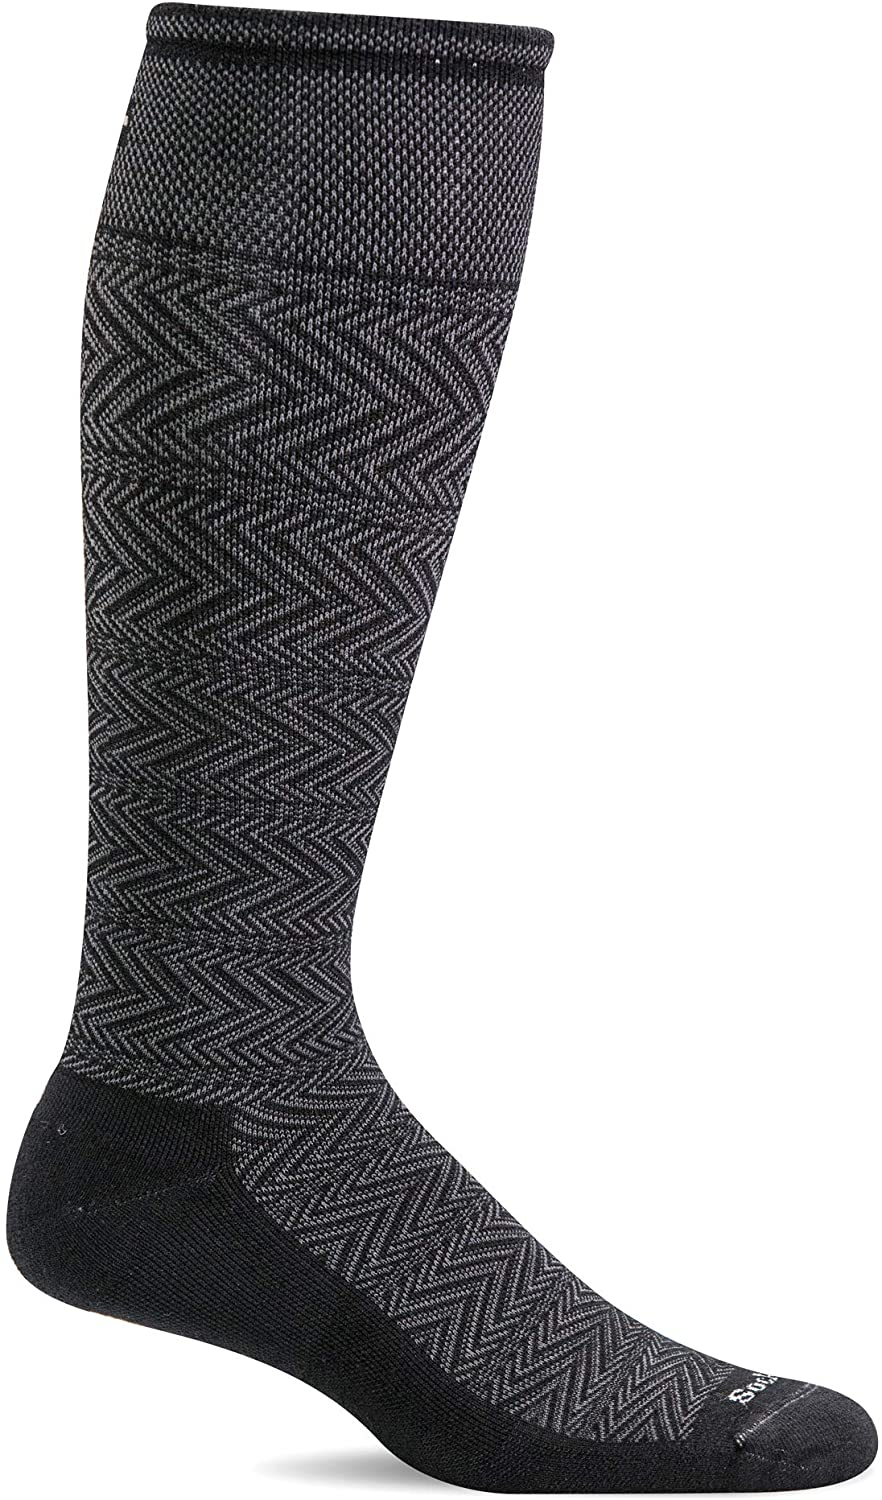 Sockwell Men's Chevron Twill Firm Graduated Compression Sock in Black from the side